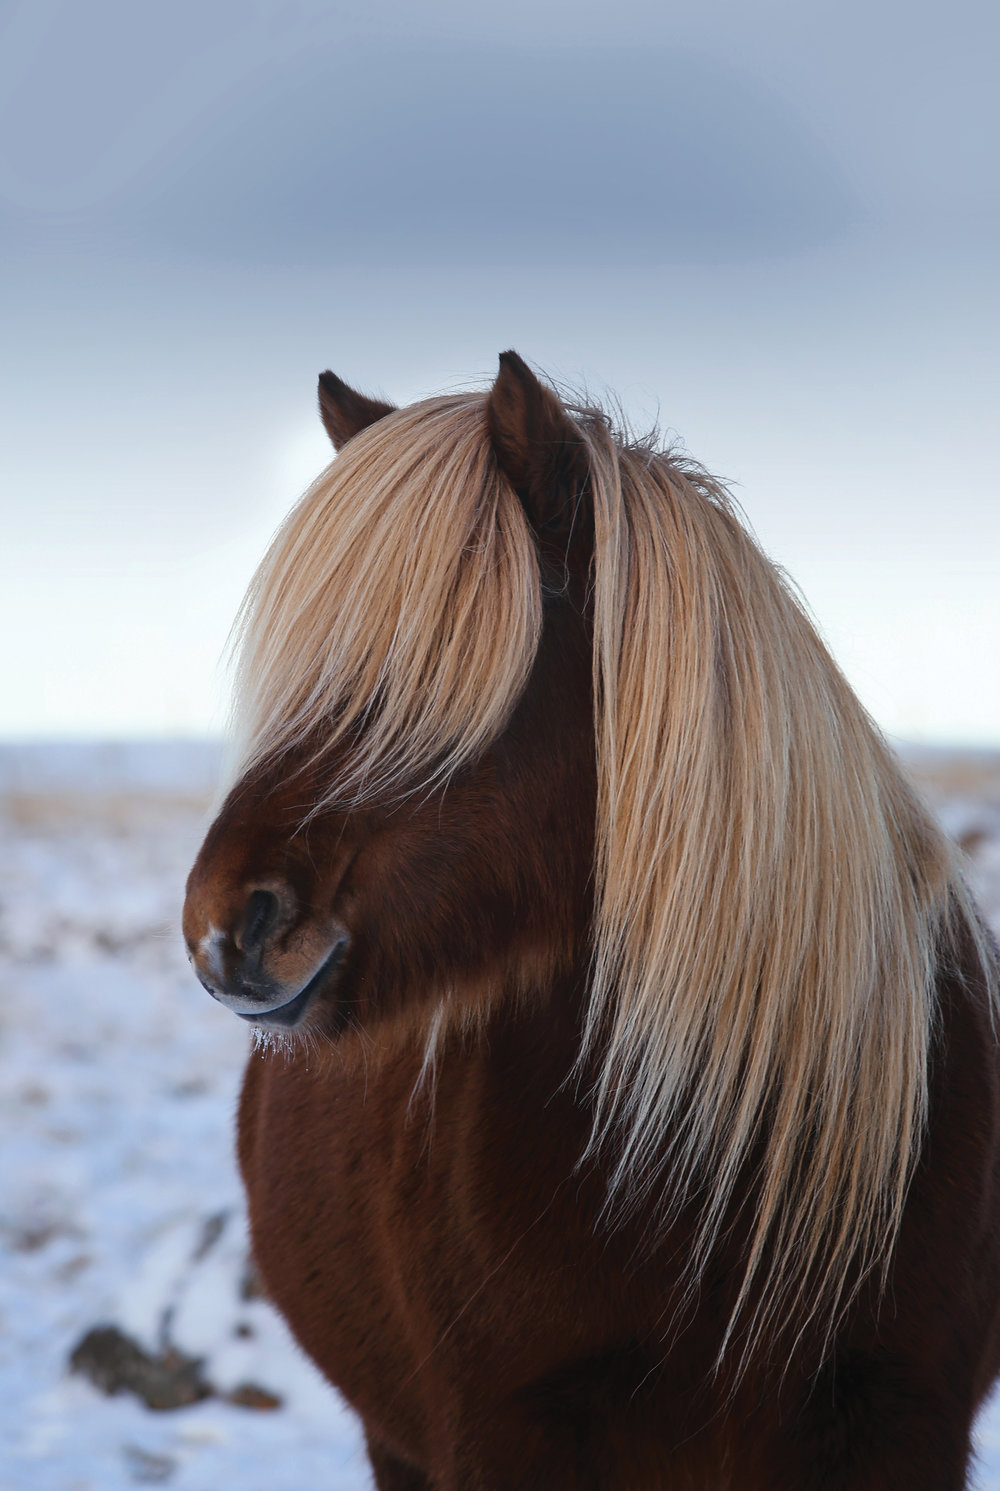 The Icelandic horse is another big reason why I love Iceland so much. My father owns three of them and I started horseback riding when I was little. During my first trip in 2015 a girl's dream became true and I spent 3 days riding with a free running herd in the Highlands. This was a life-changing experience for me and probably one of the coolest things I've done on my travels worldwide. These horses (it's important that you say horse, not pony) are the most warmth, giving and heart melting animals I know.